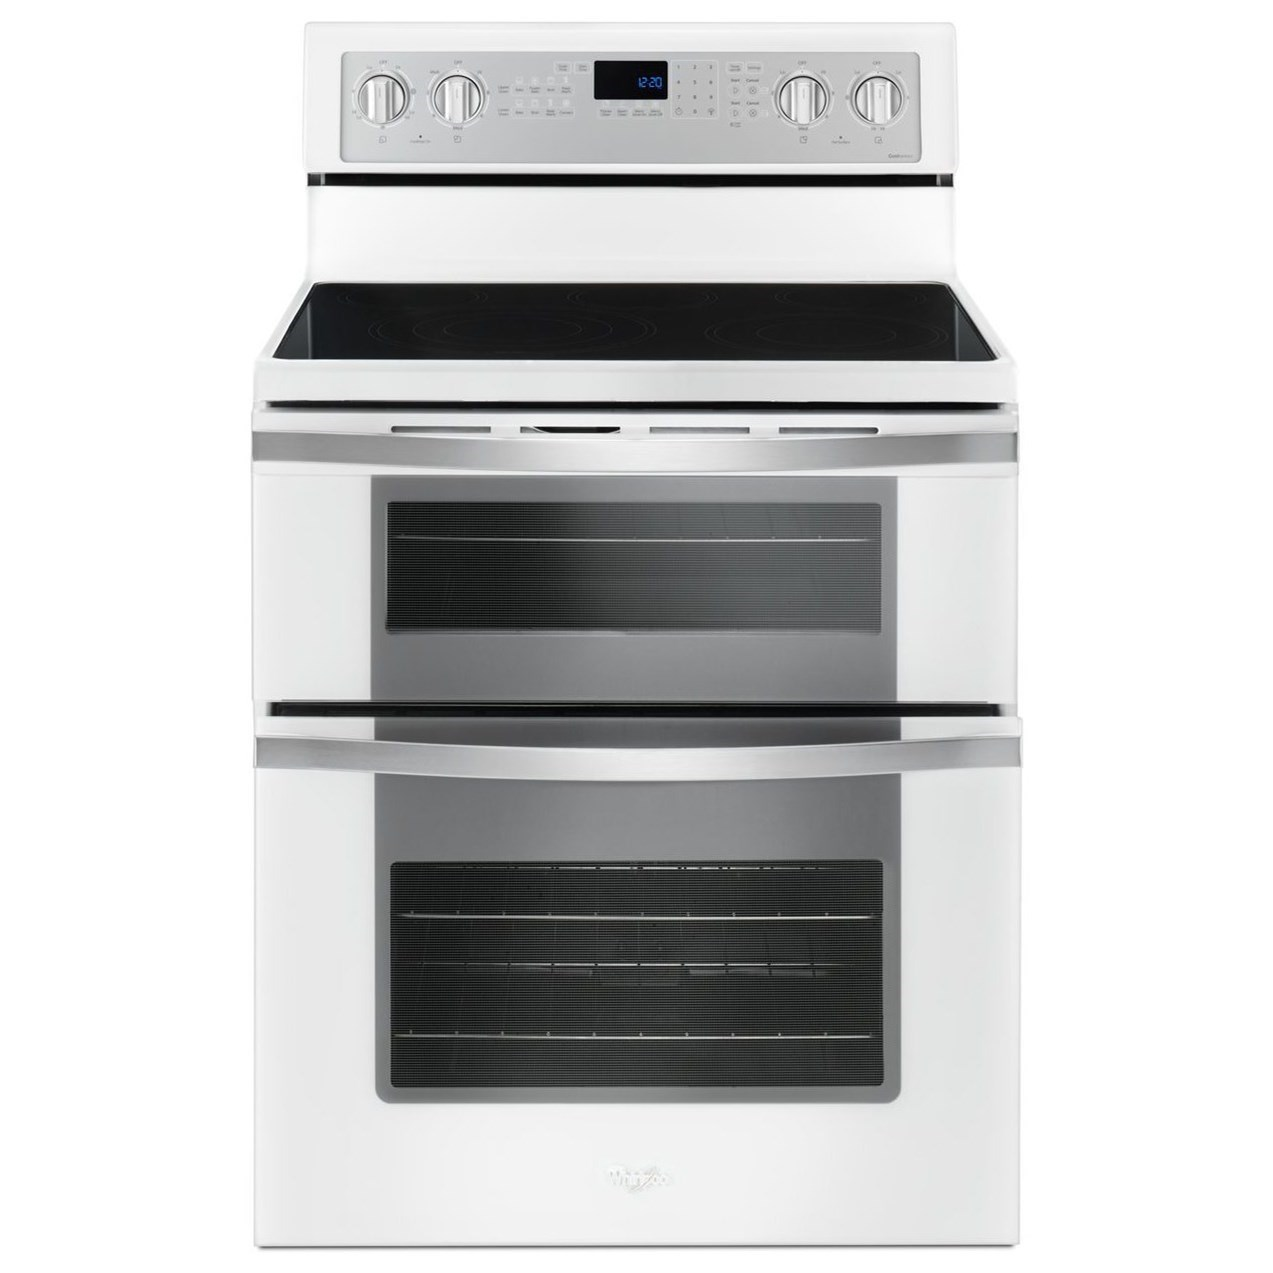 6.7 Cu. Ft. Electric Double Oven Range with